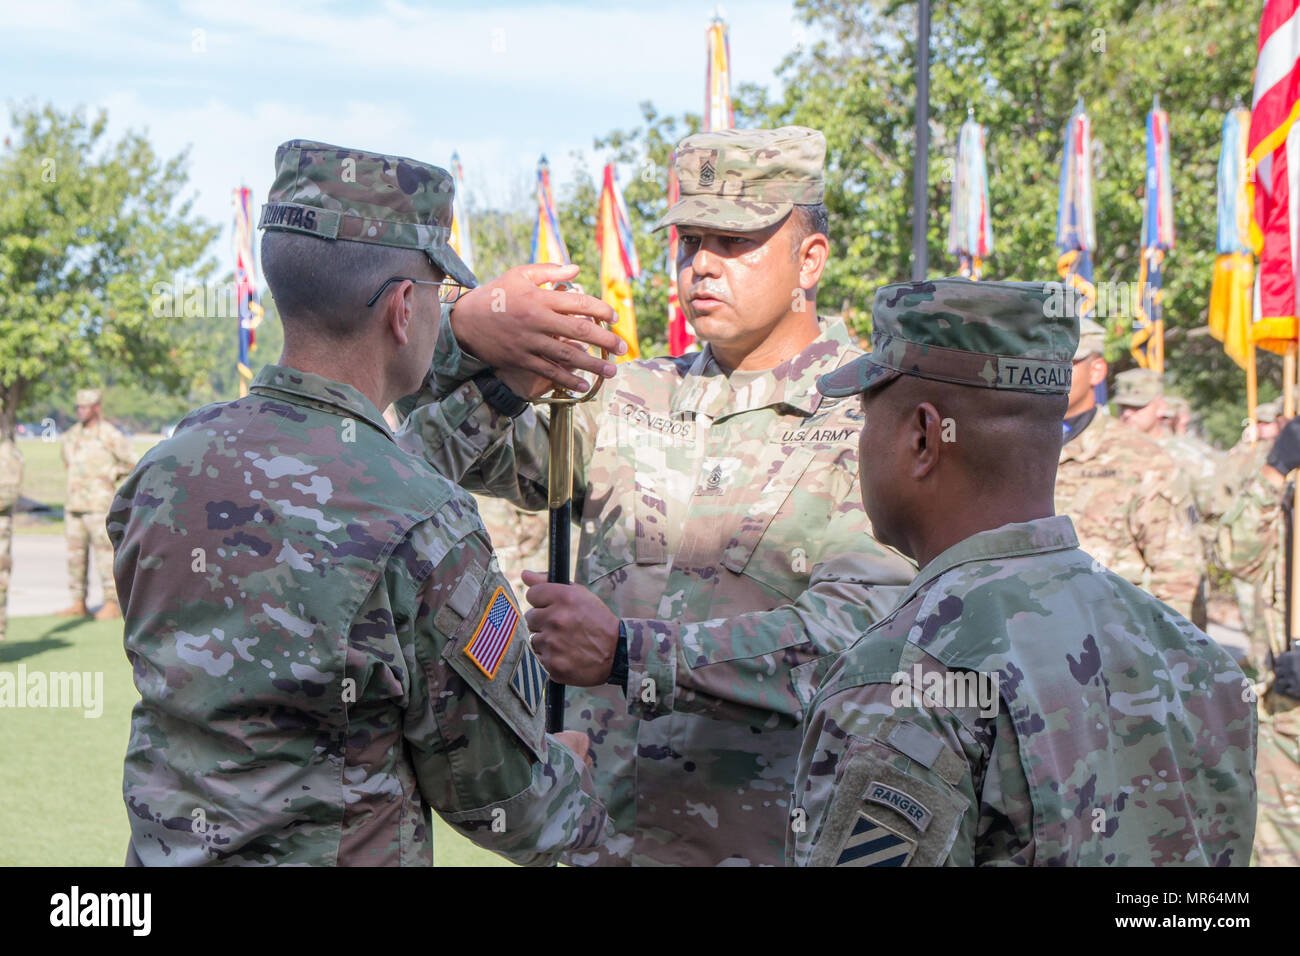 Maj. Gen. Leopoldo Quintas (left), the 3rd Infantry Division commander, passes a saber to Sgt. Maj. Steven Cisneros, the 3rd ID operations sergeant major at a relinquishment of responsibility ceremony at Fort Stewart, Ga. on May 19, 2017. 3rd ID Command Sgt. Maj. Walter Tagalicud relinquished responsibility at the ceremony and moves on to serve as command senior enlisted advisor for I Corps at Joint Base Lewis-McChord, Wash. (U.S. Army photo by Capt. Jarrod Morris) Stock Photo